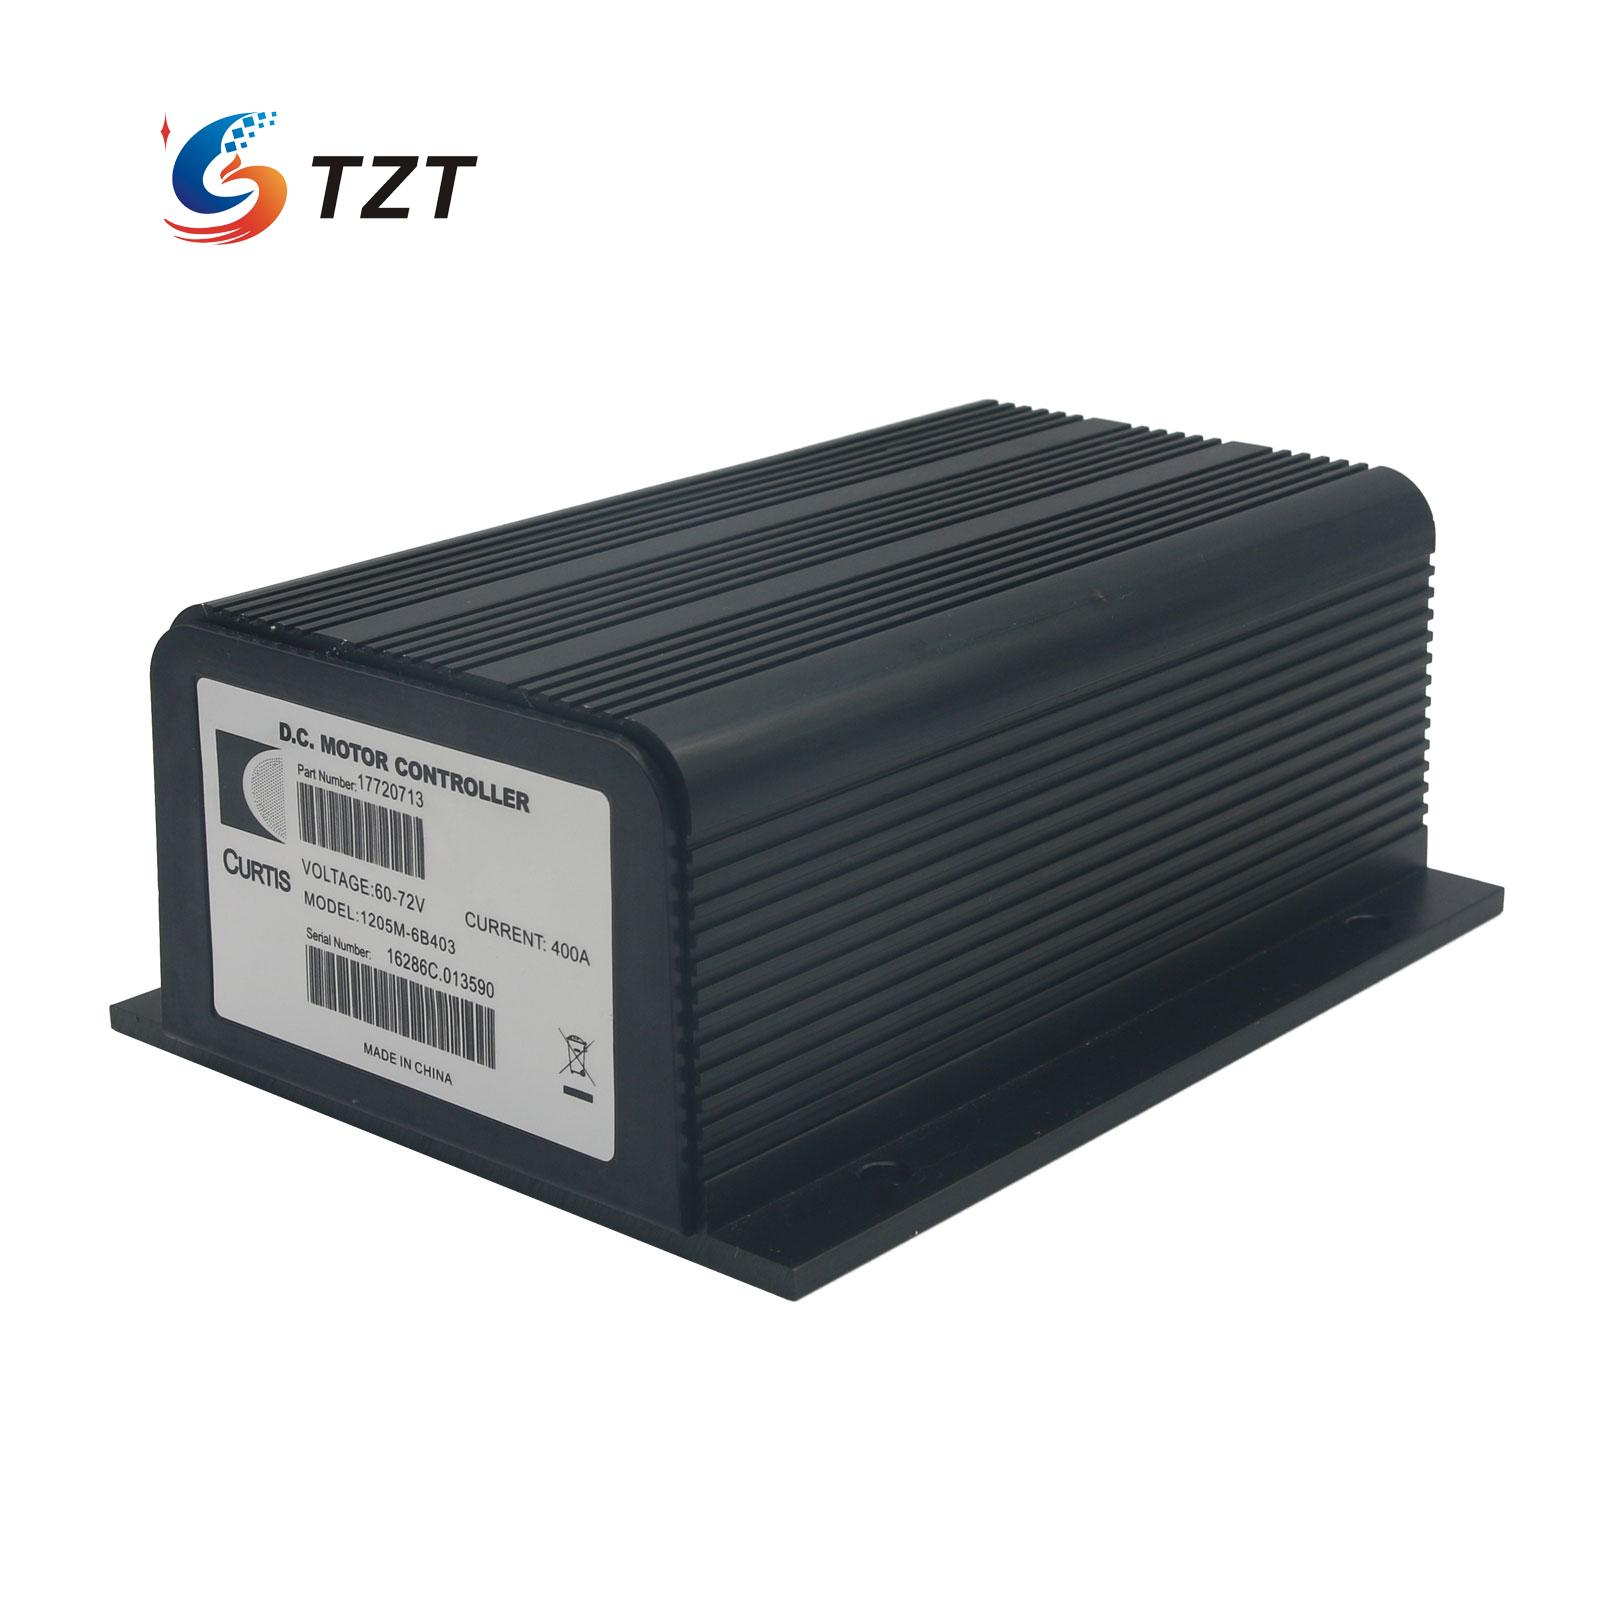 US $157 52 12% OFF 60V 72V 1205M 6B403 PMC 400A DC Series Motor Controller  1205M 6401 6B401 for Curtis replacement parts-in Flight Controller from